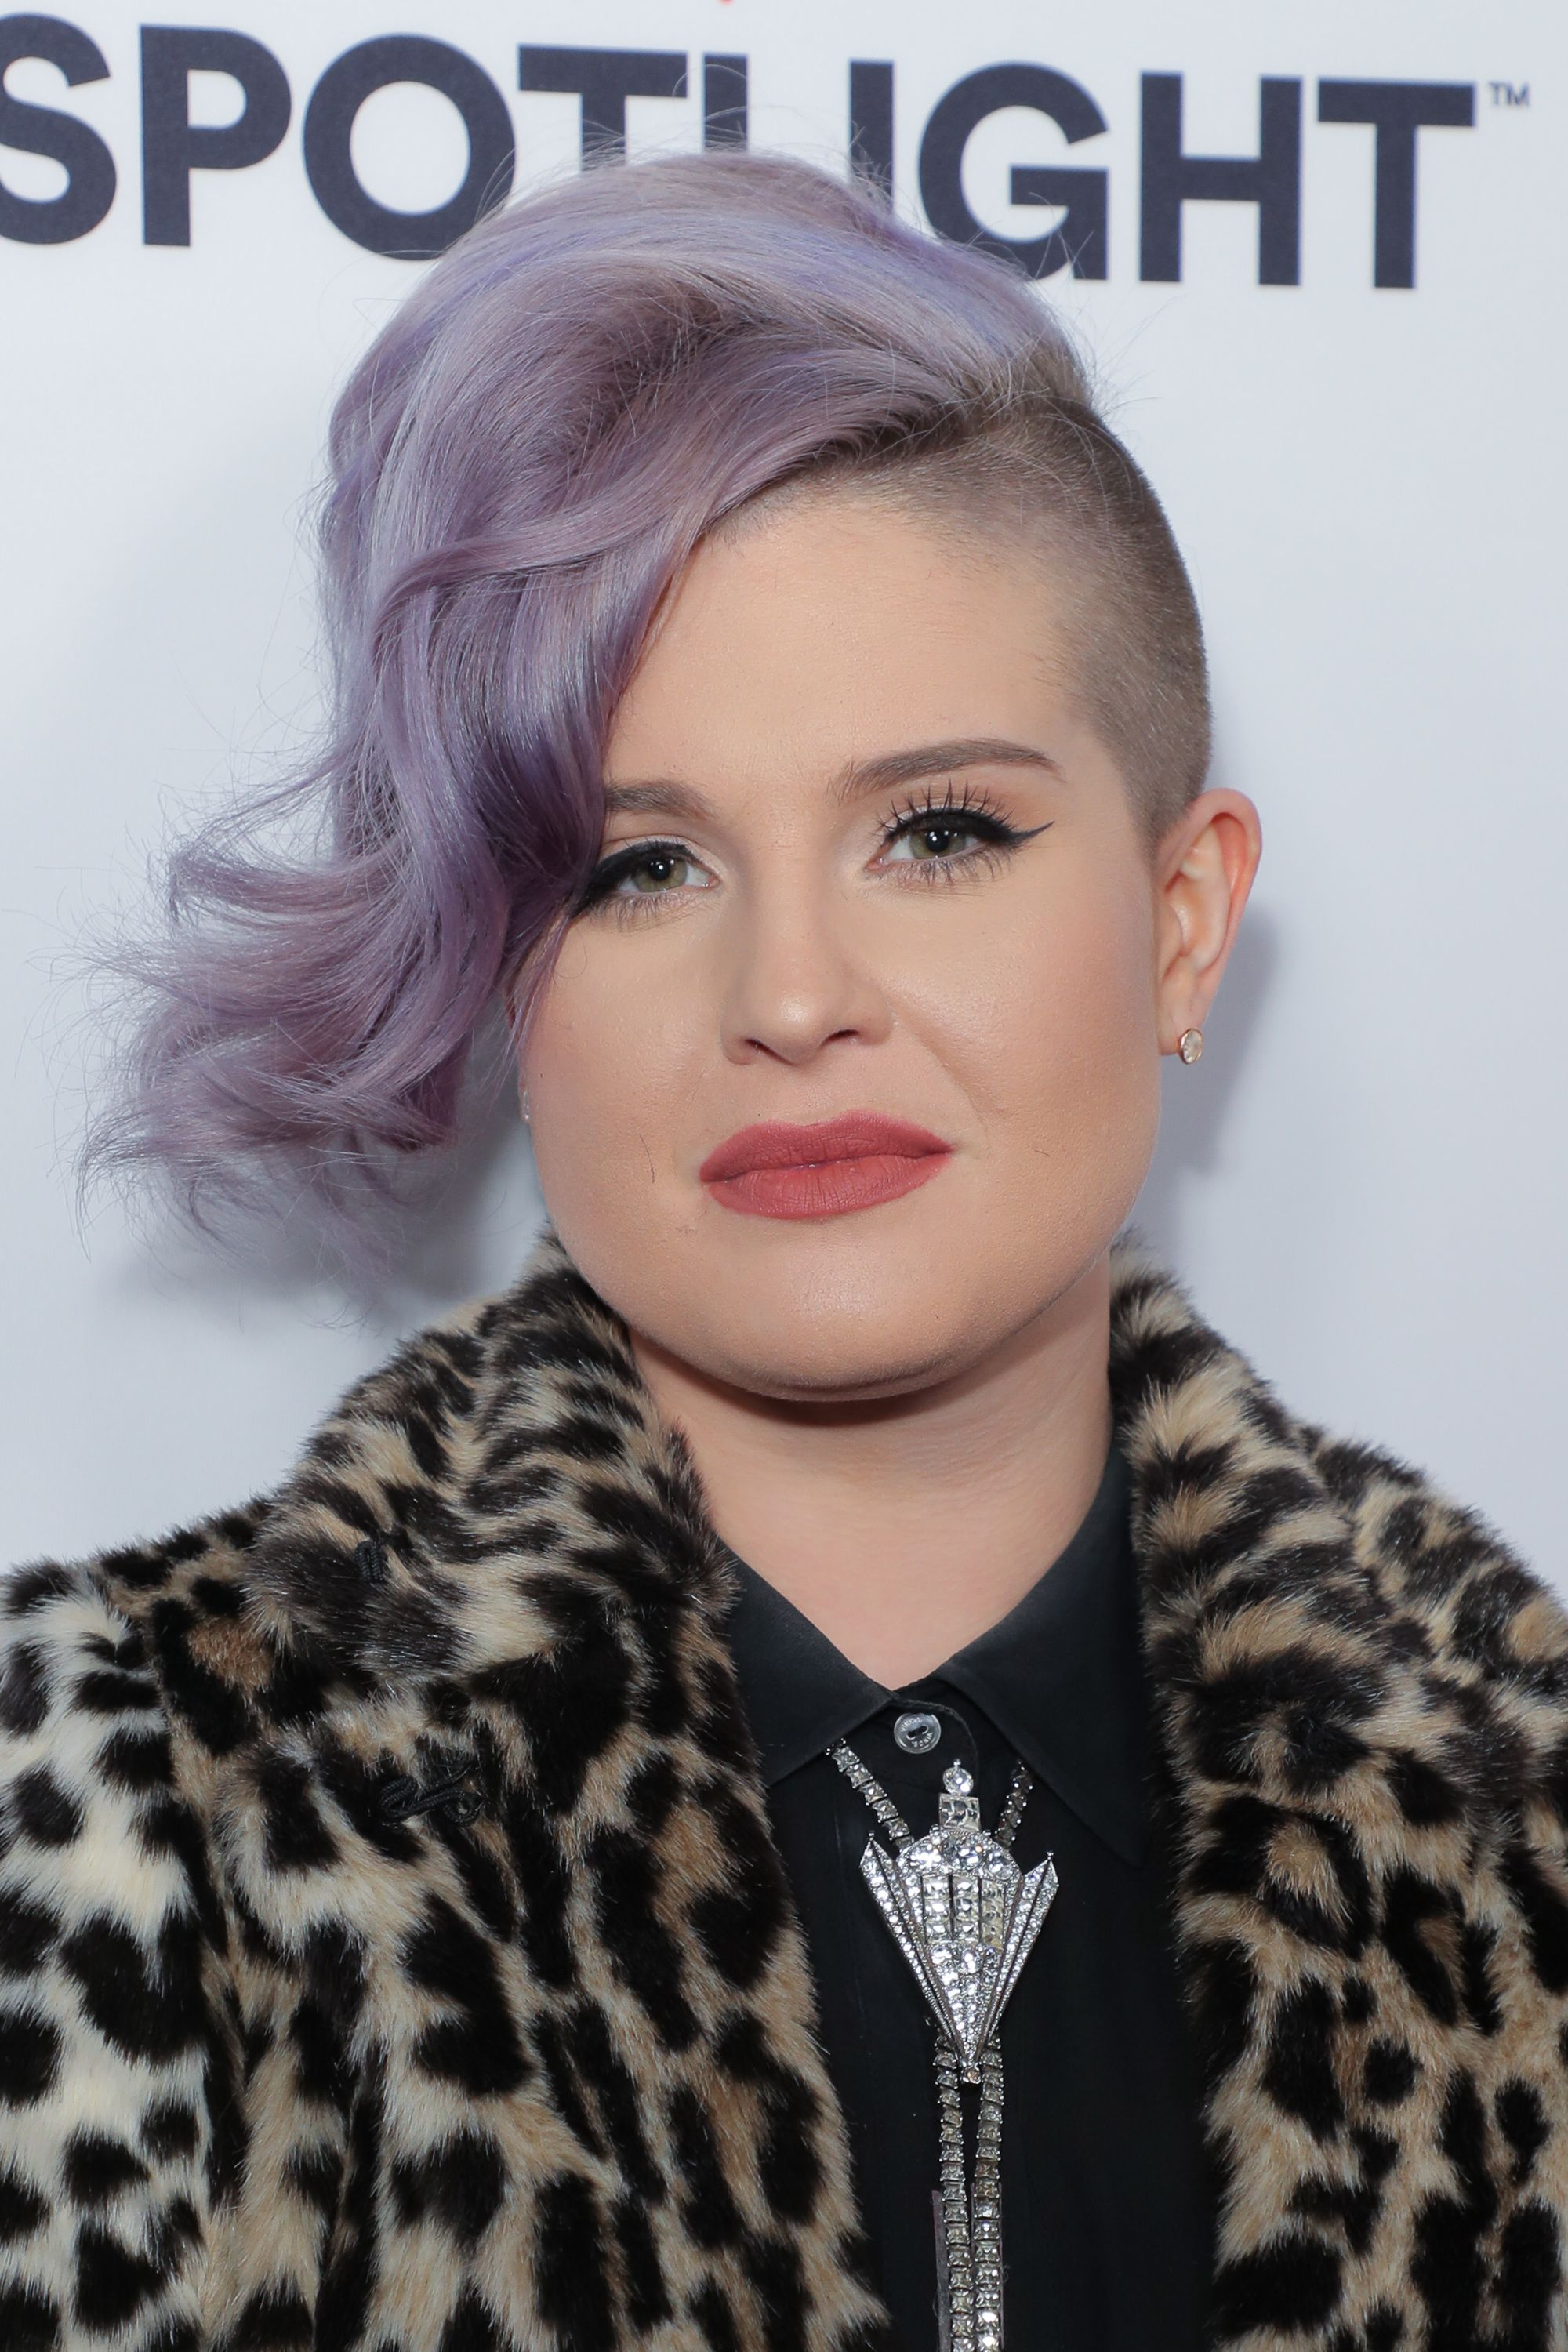 kelly osbourne with lilac curled short hair with one shaved side, wearing a leopard print fur coat